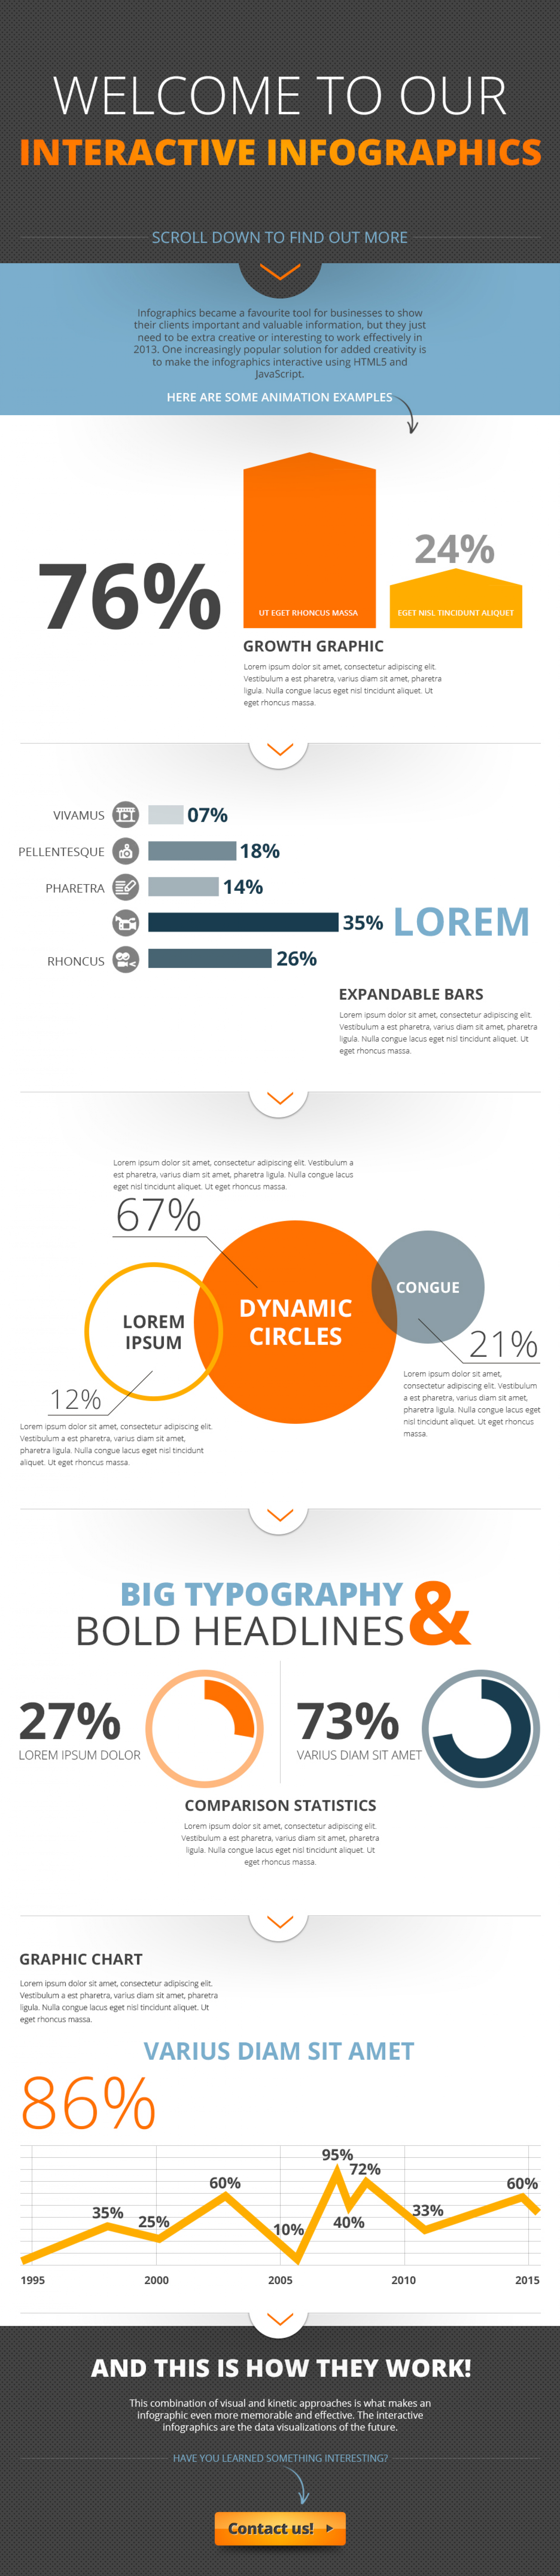 HTML 5 Interactive Infographic Infographic